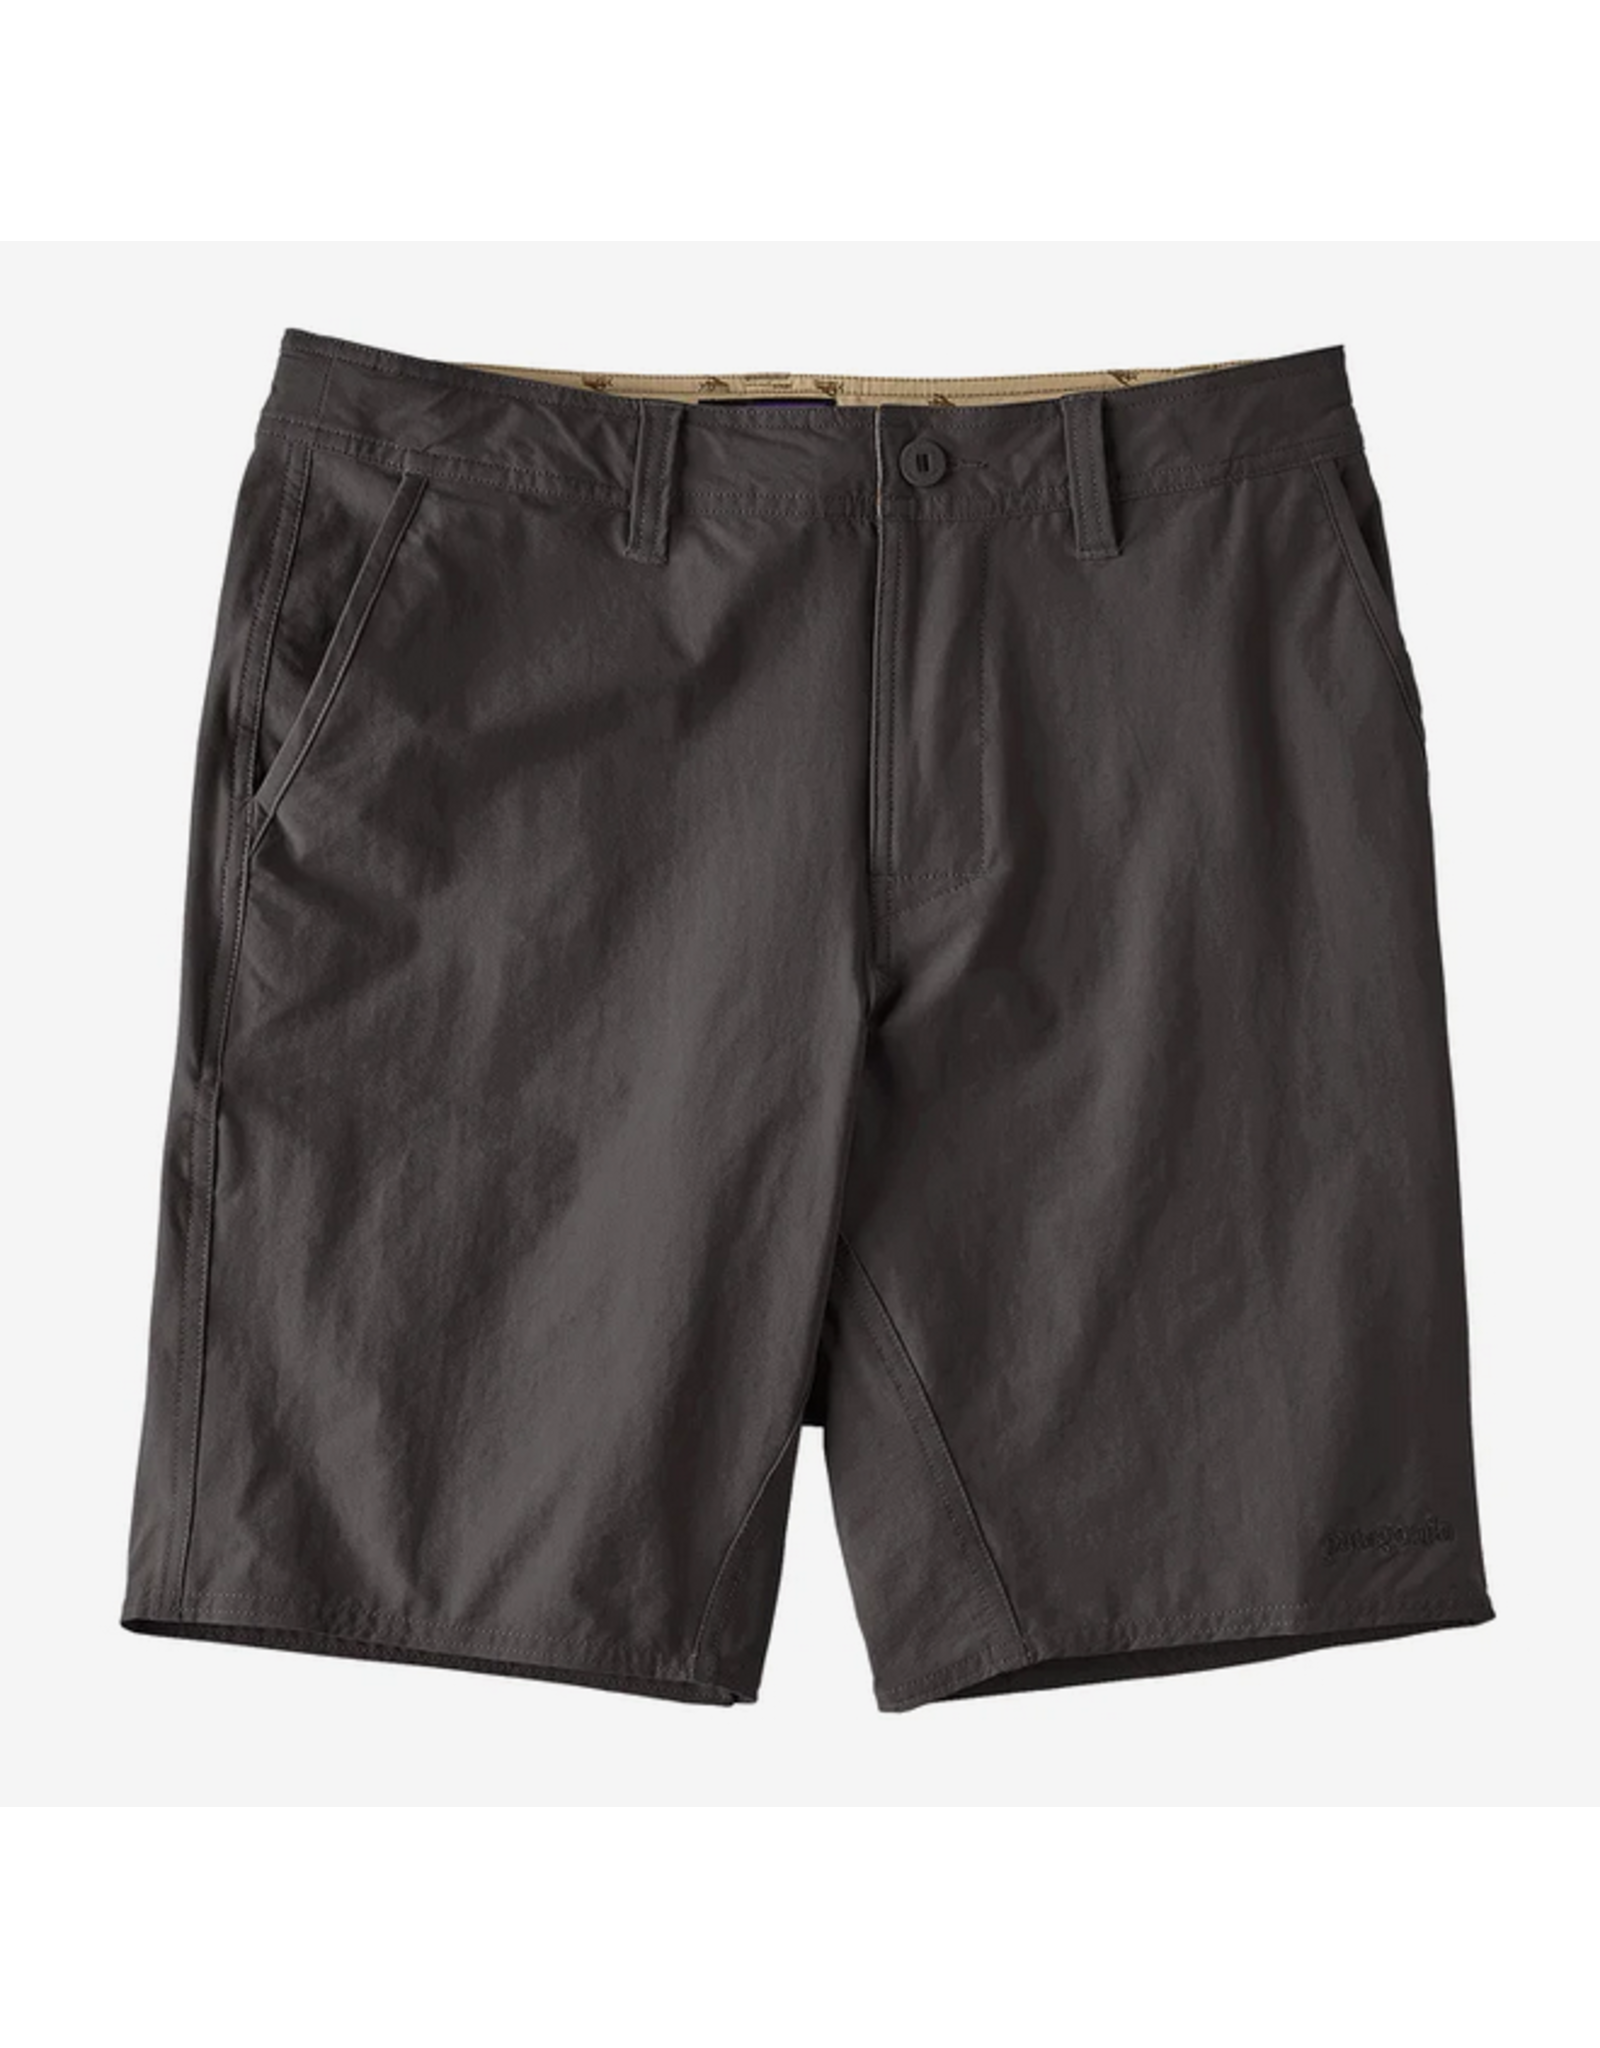 Patagonia Patagonia Stretch Wavefarer Walk Short *Sample Sale (Size 34)